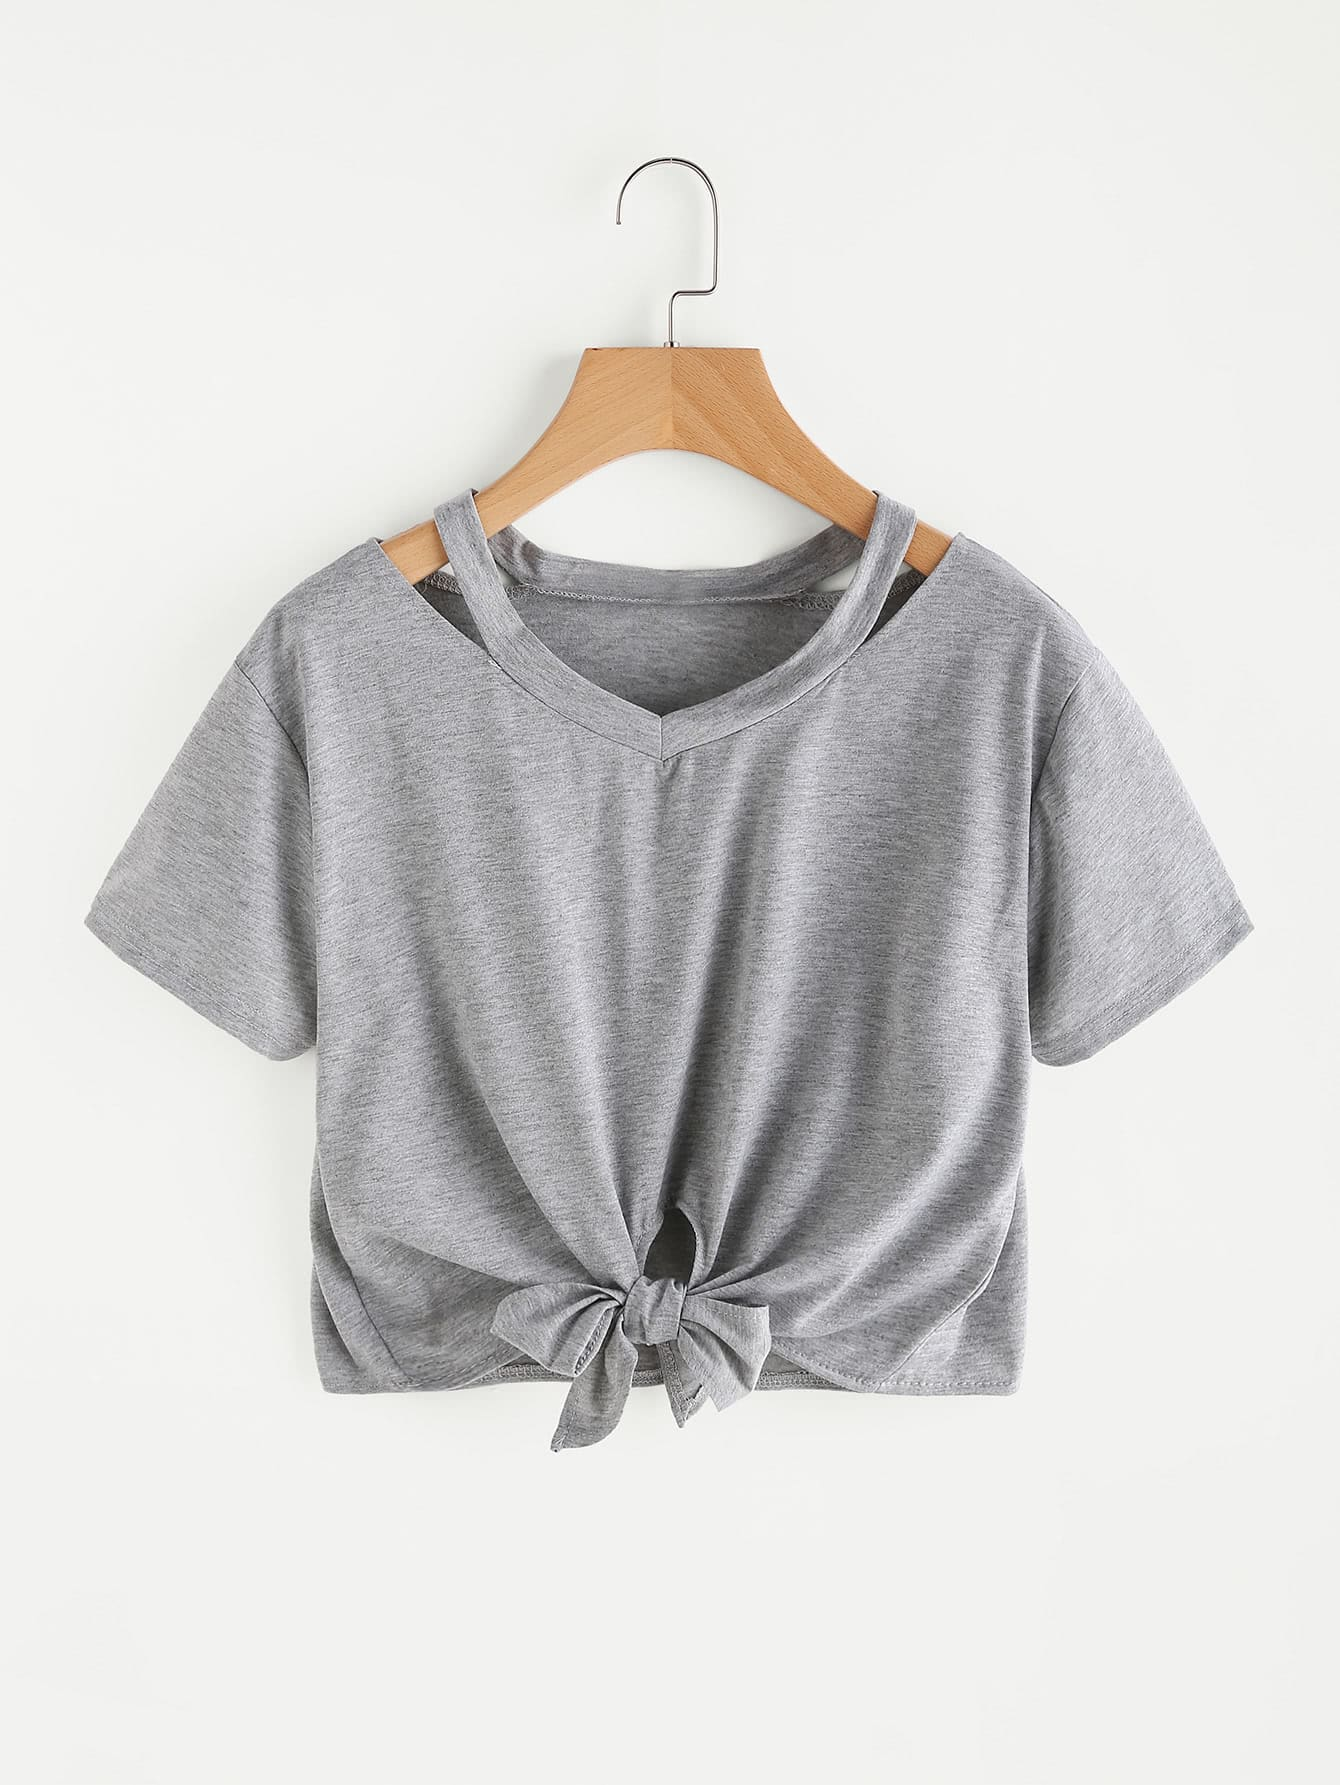 Cut out neck knot front teefor women romwe for How to whiten shirts